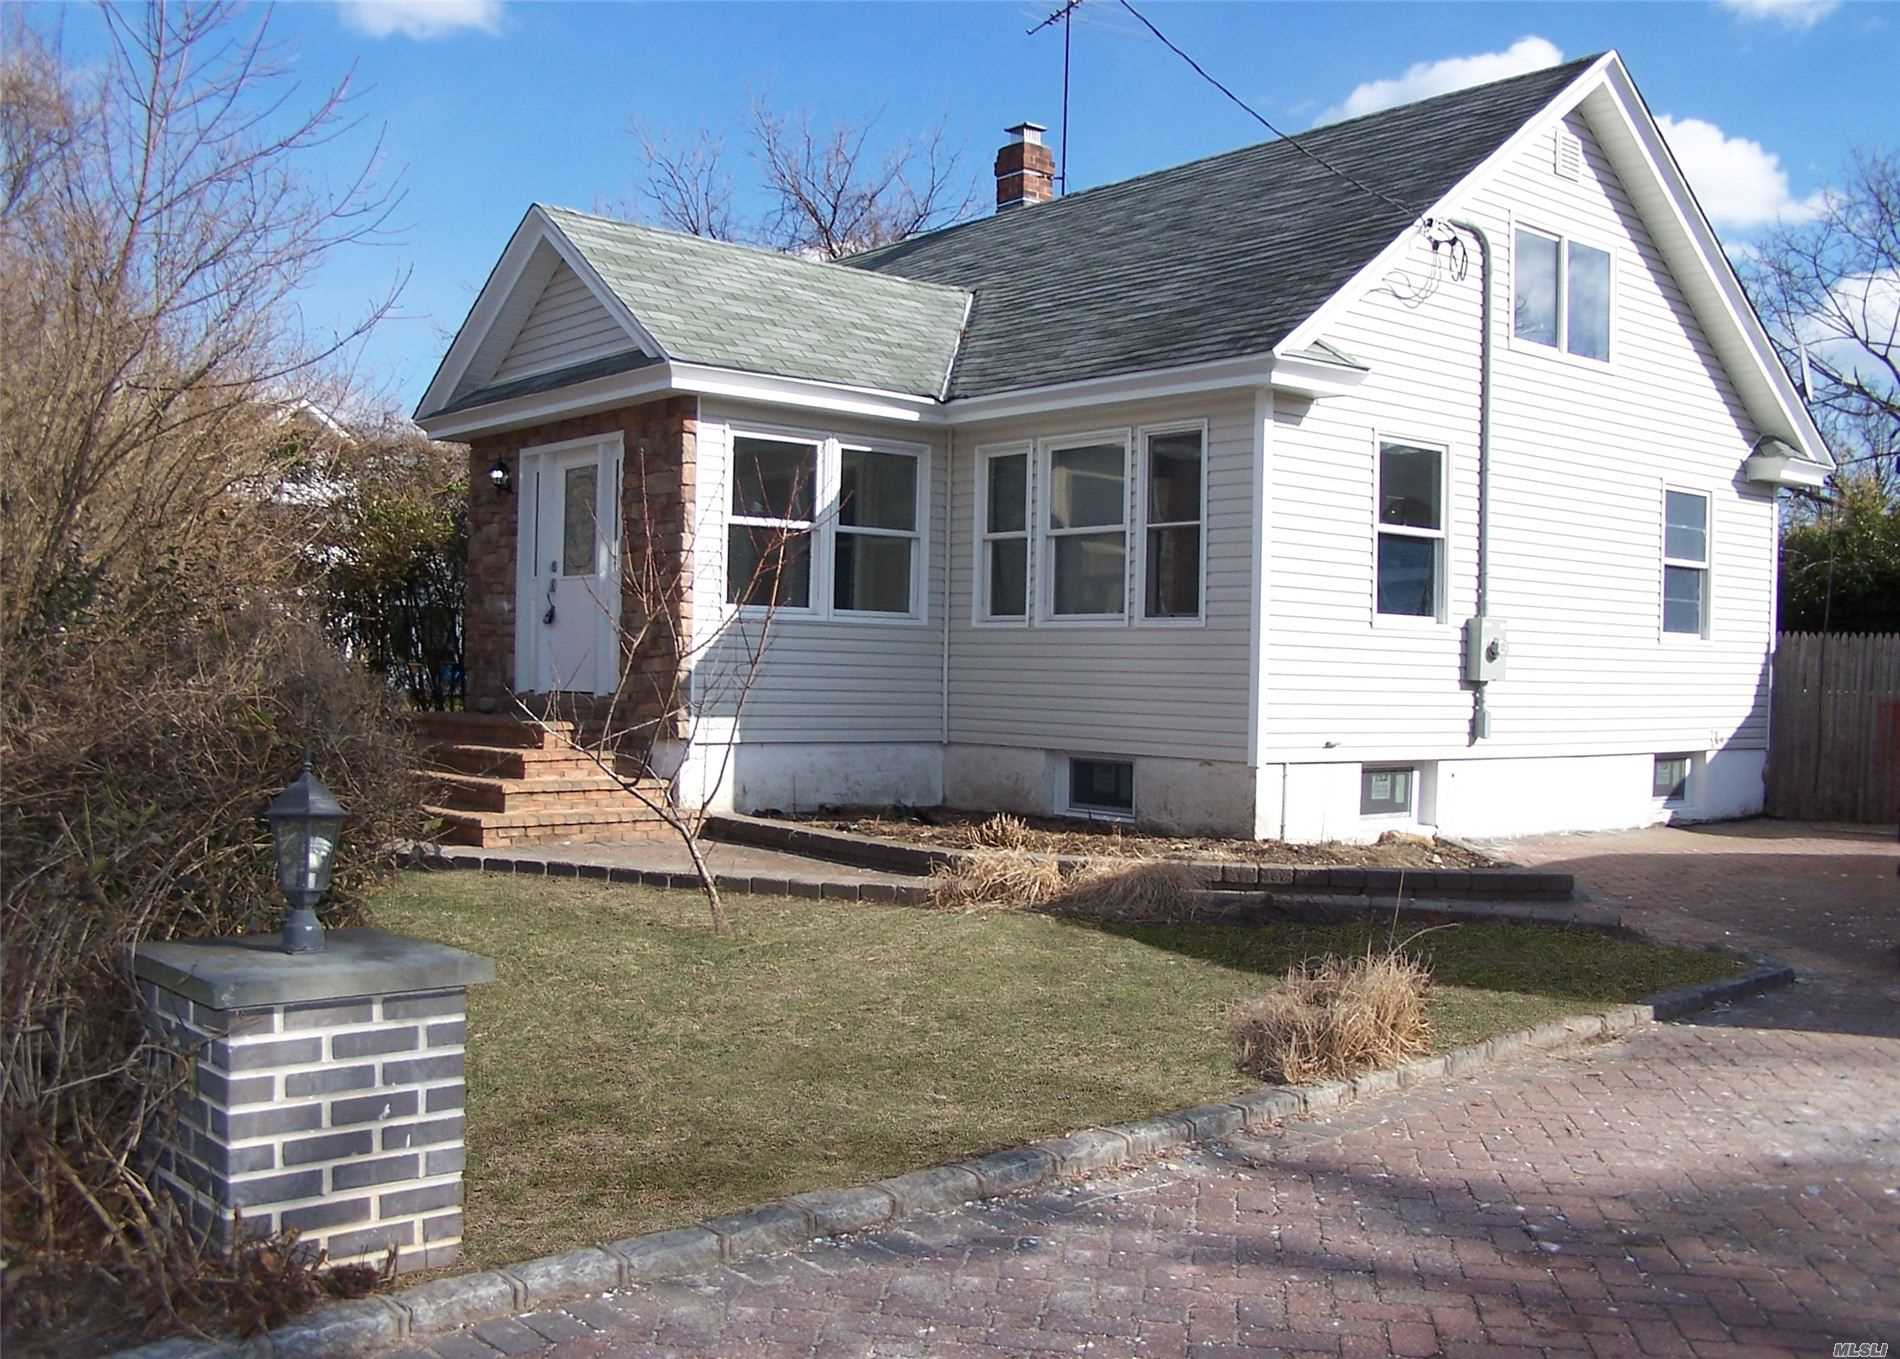 Property for sale at 24 W Garfield Street, Bay Shore NY 11706, Bay Shore,  New York 11706